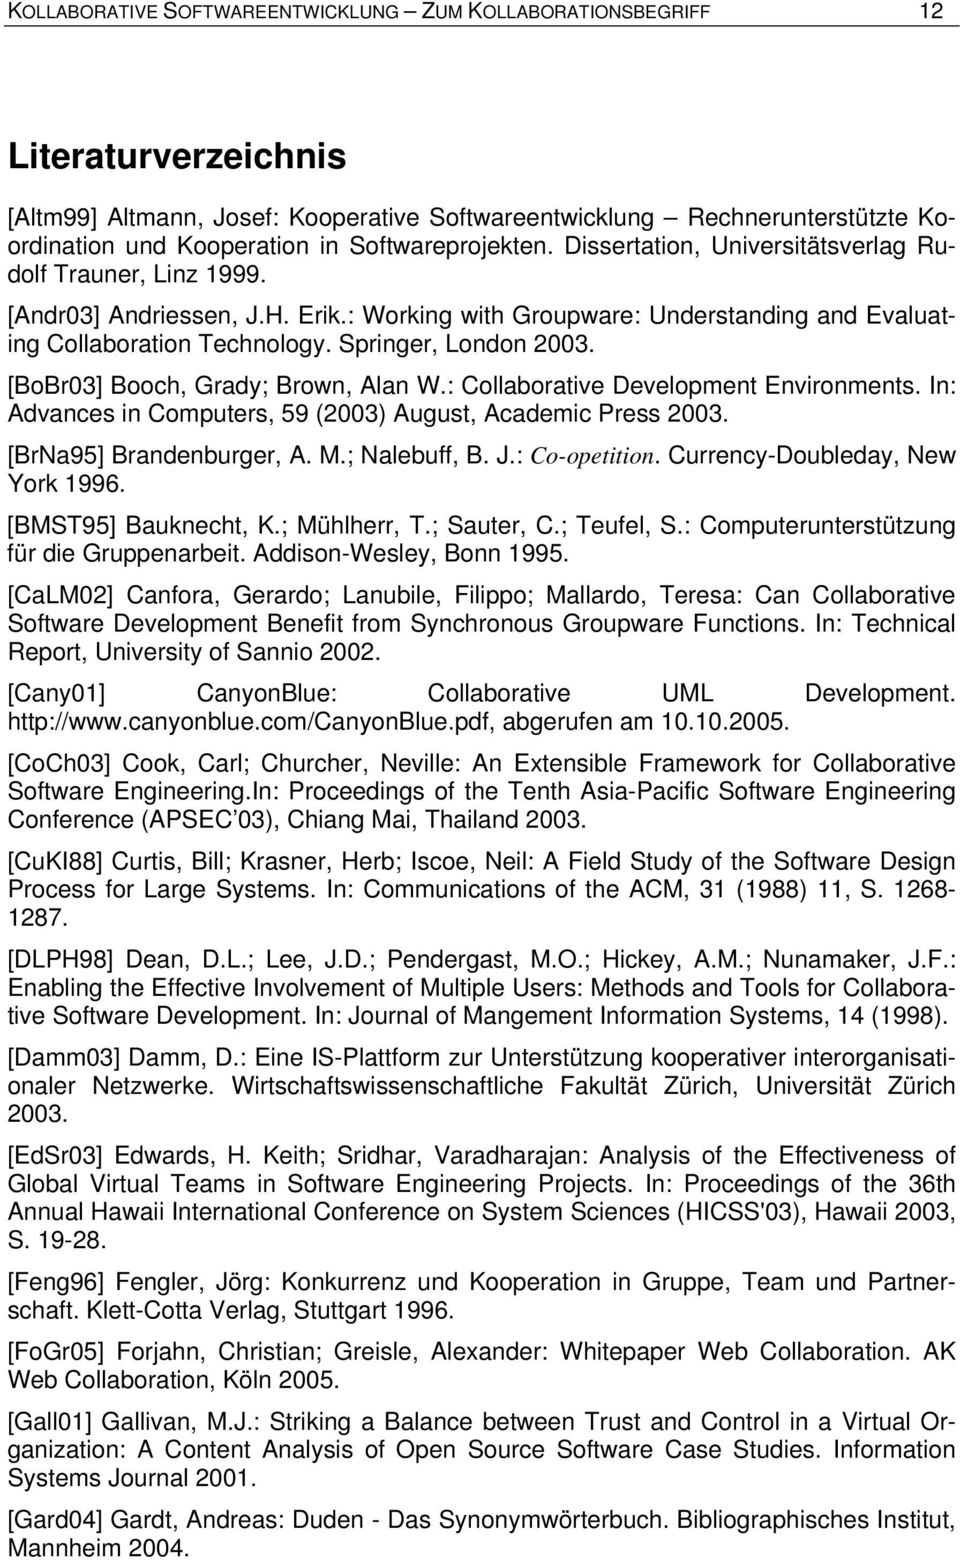 Springer, London 2003. [BoBr03] Booch, Grady; Brown, Alan W.: Collaborative Development Environments. In: Advances in Computers, 59 (2003) August, Academic Press 2003. [BrNa95] Brandenburger, A. M.